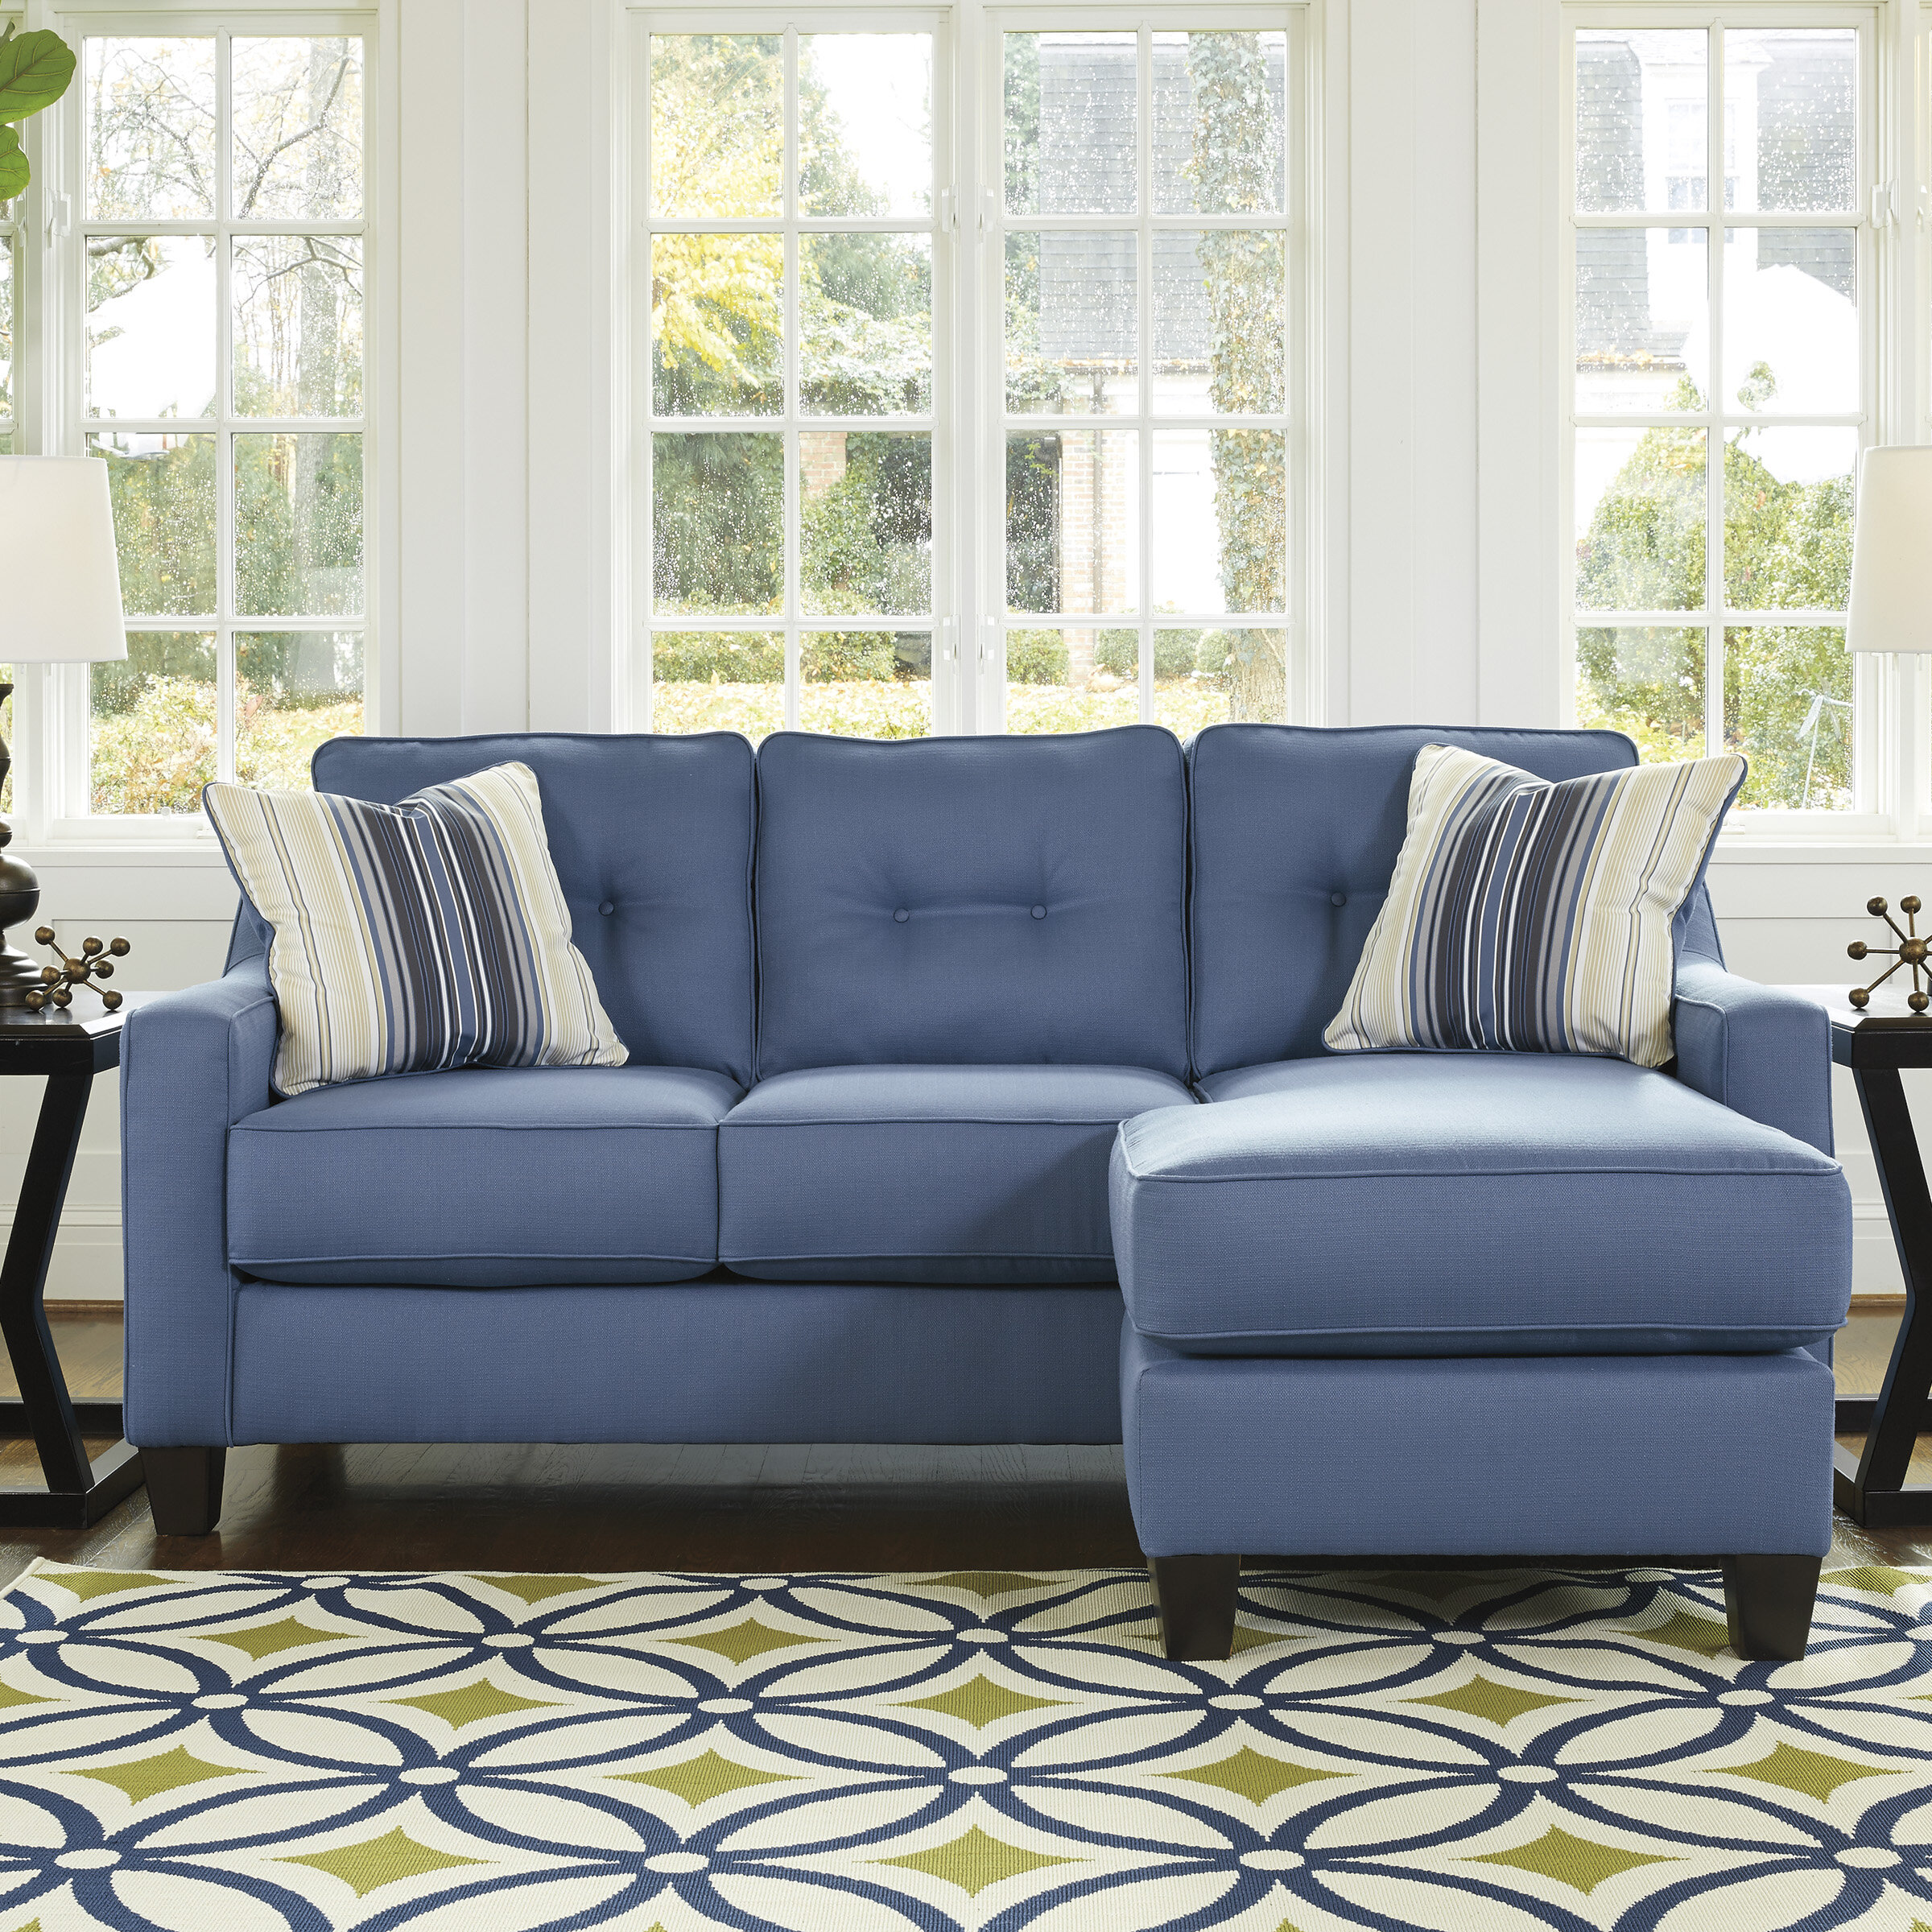 living sofas couches sofa sectional room royal furniture navy light pennington blue seating dark